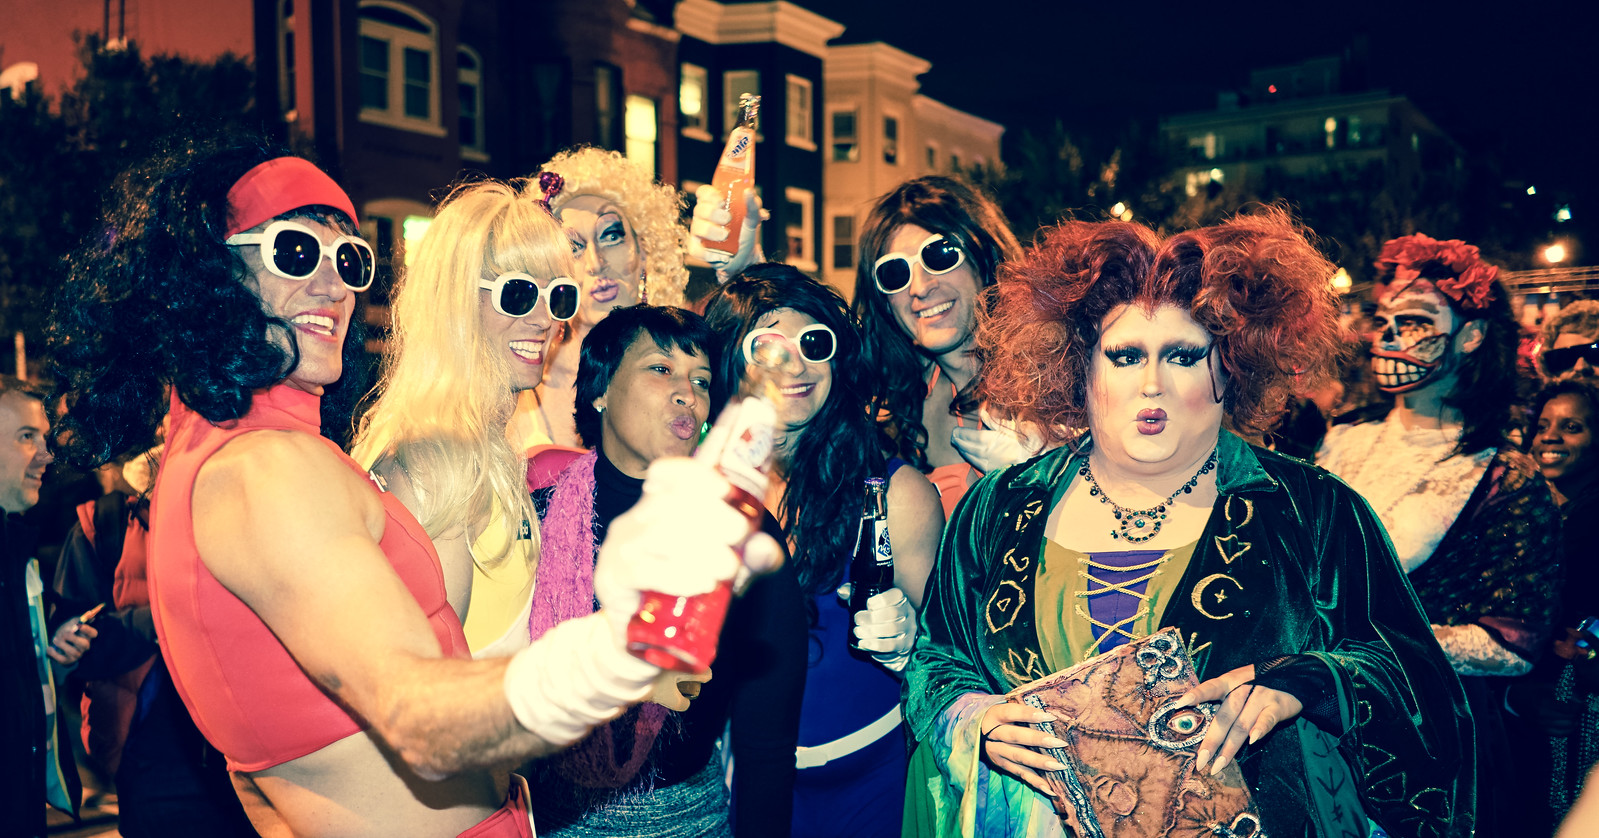 2015 High Heel Race Dupont Circle Washington DC USA 00095